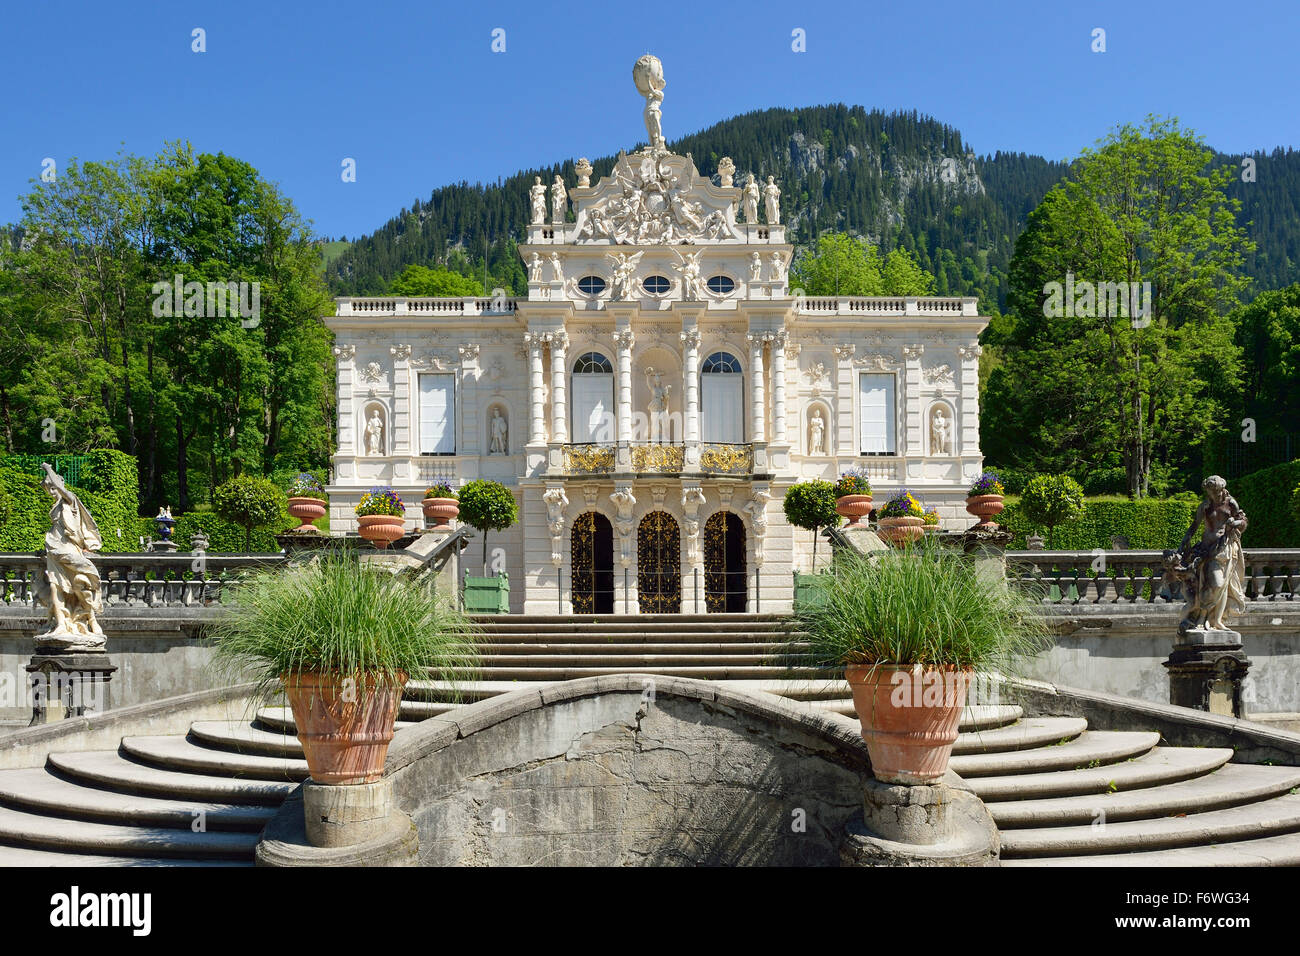 Linderhof Castle of King Ludwig II of Bavaria, Linderhof castle, rococo, Ammergau range, Bavarian Alps, Upper Bavaria, - Stock Image